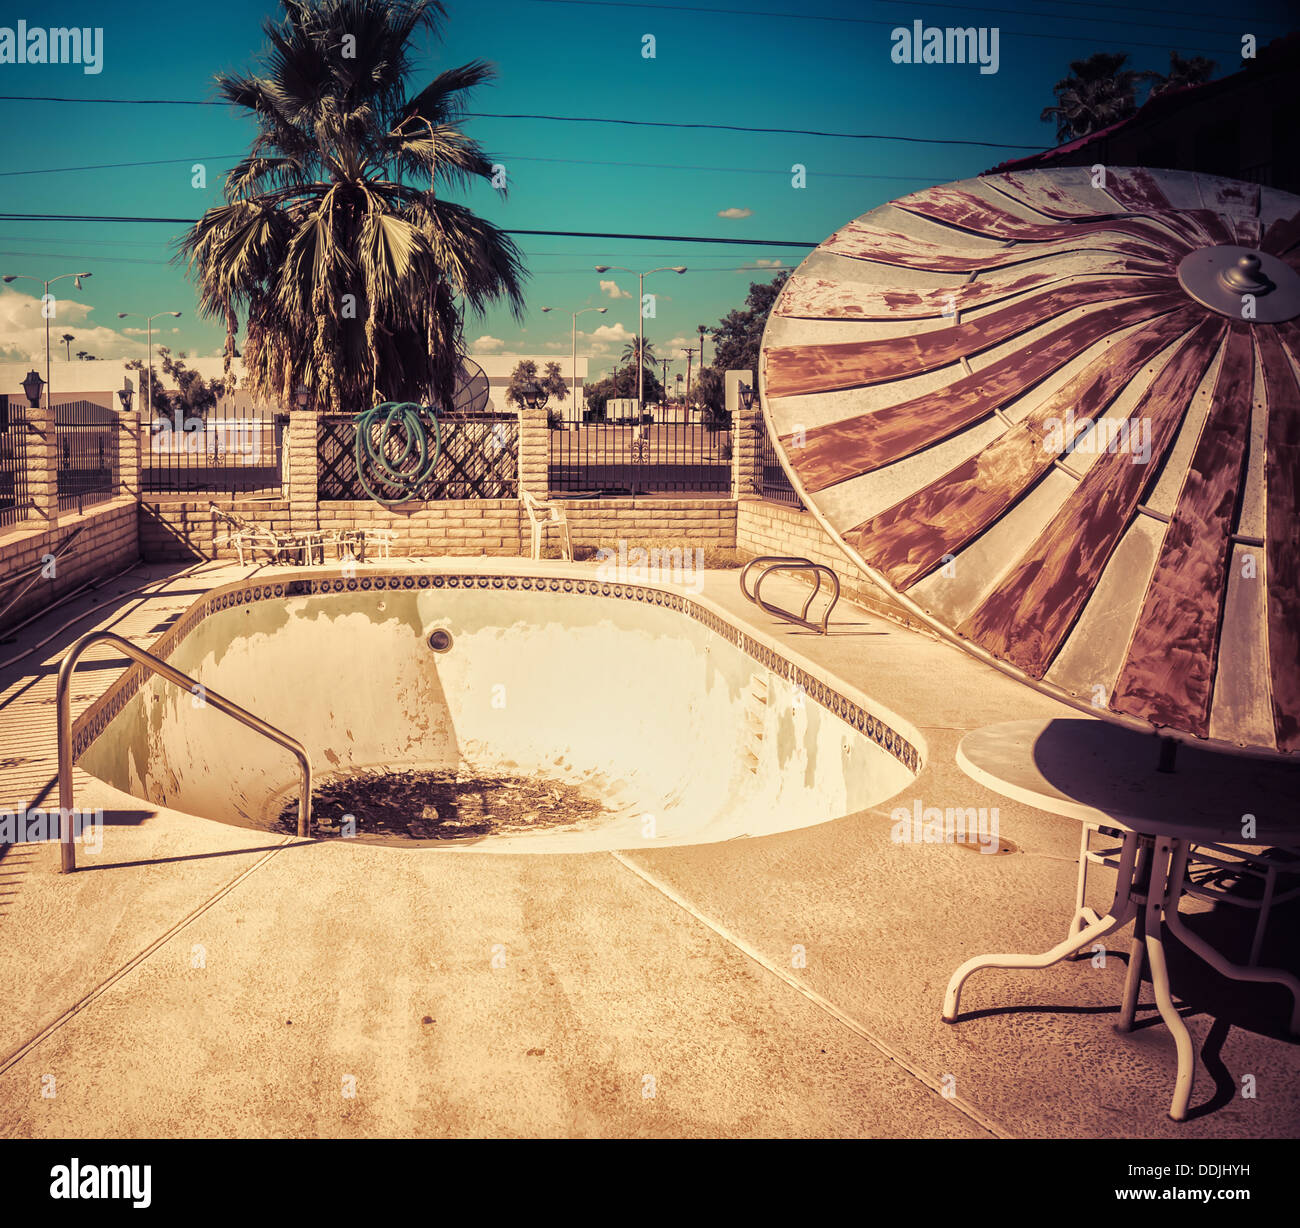 Abandoned American Motel Swimming Pool Depicting South West Urban Stock Photo Alamy